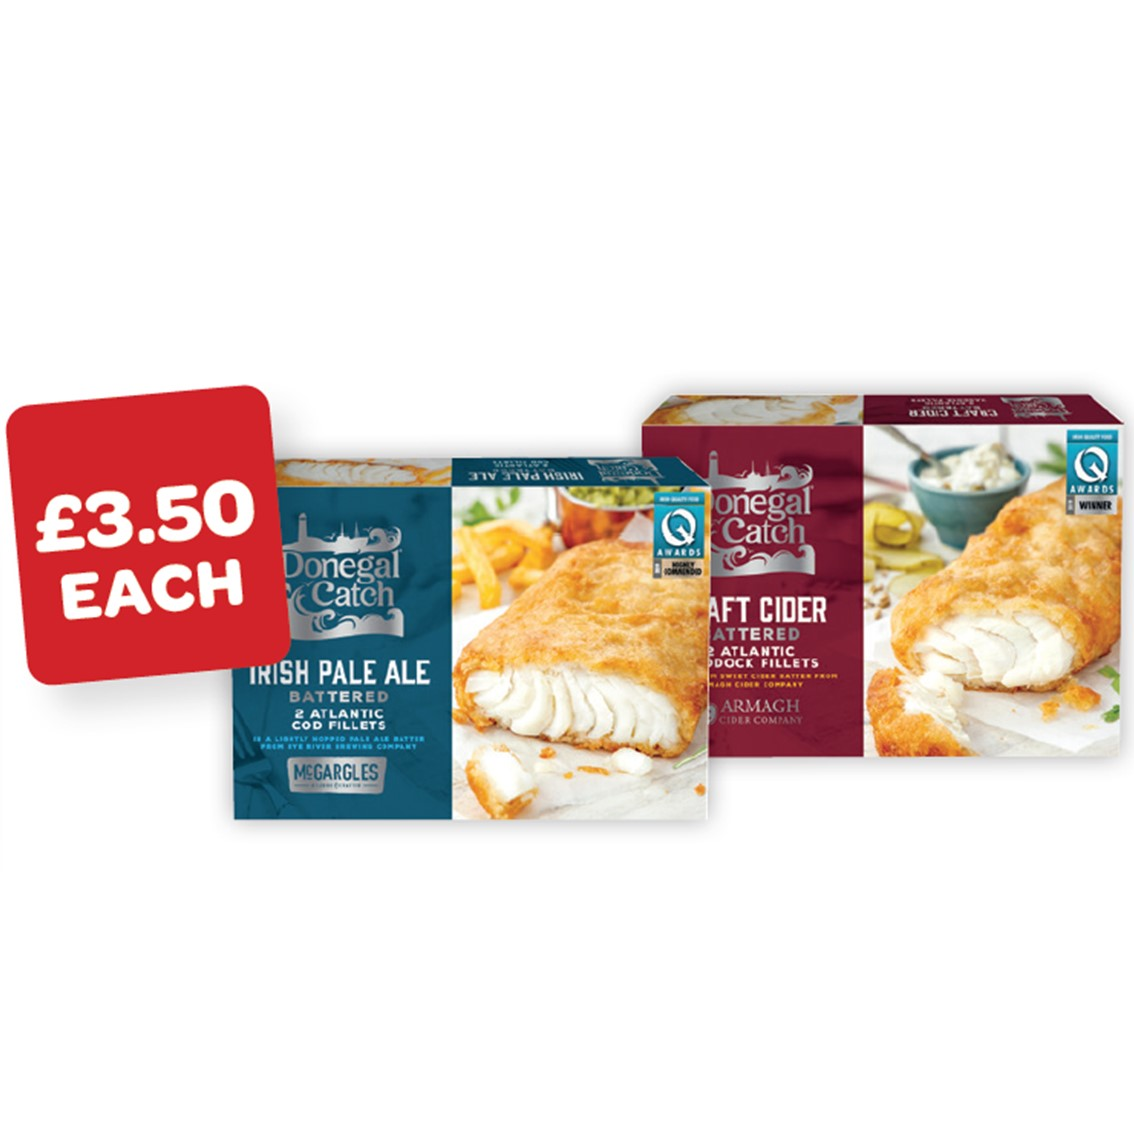 Donegal Catch Beer Battered Cod / Cider Batterd Haddock Fillets